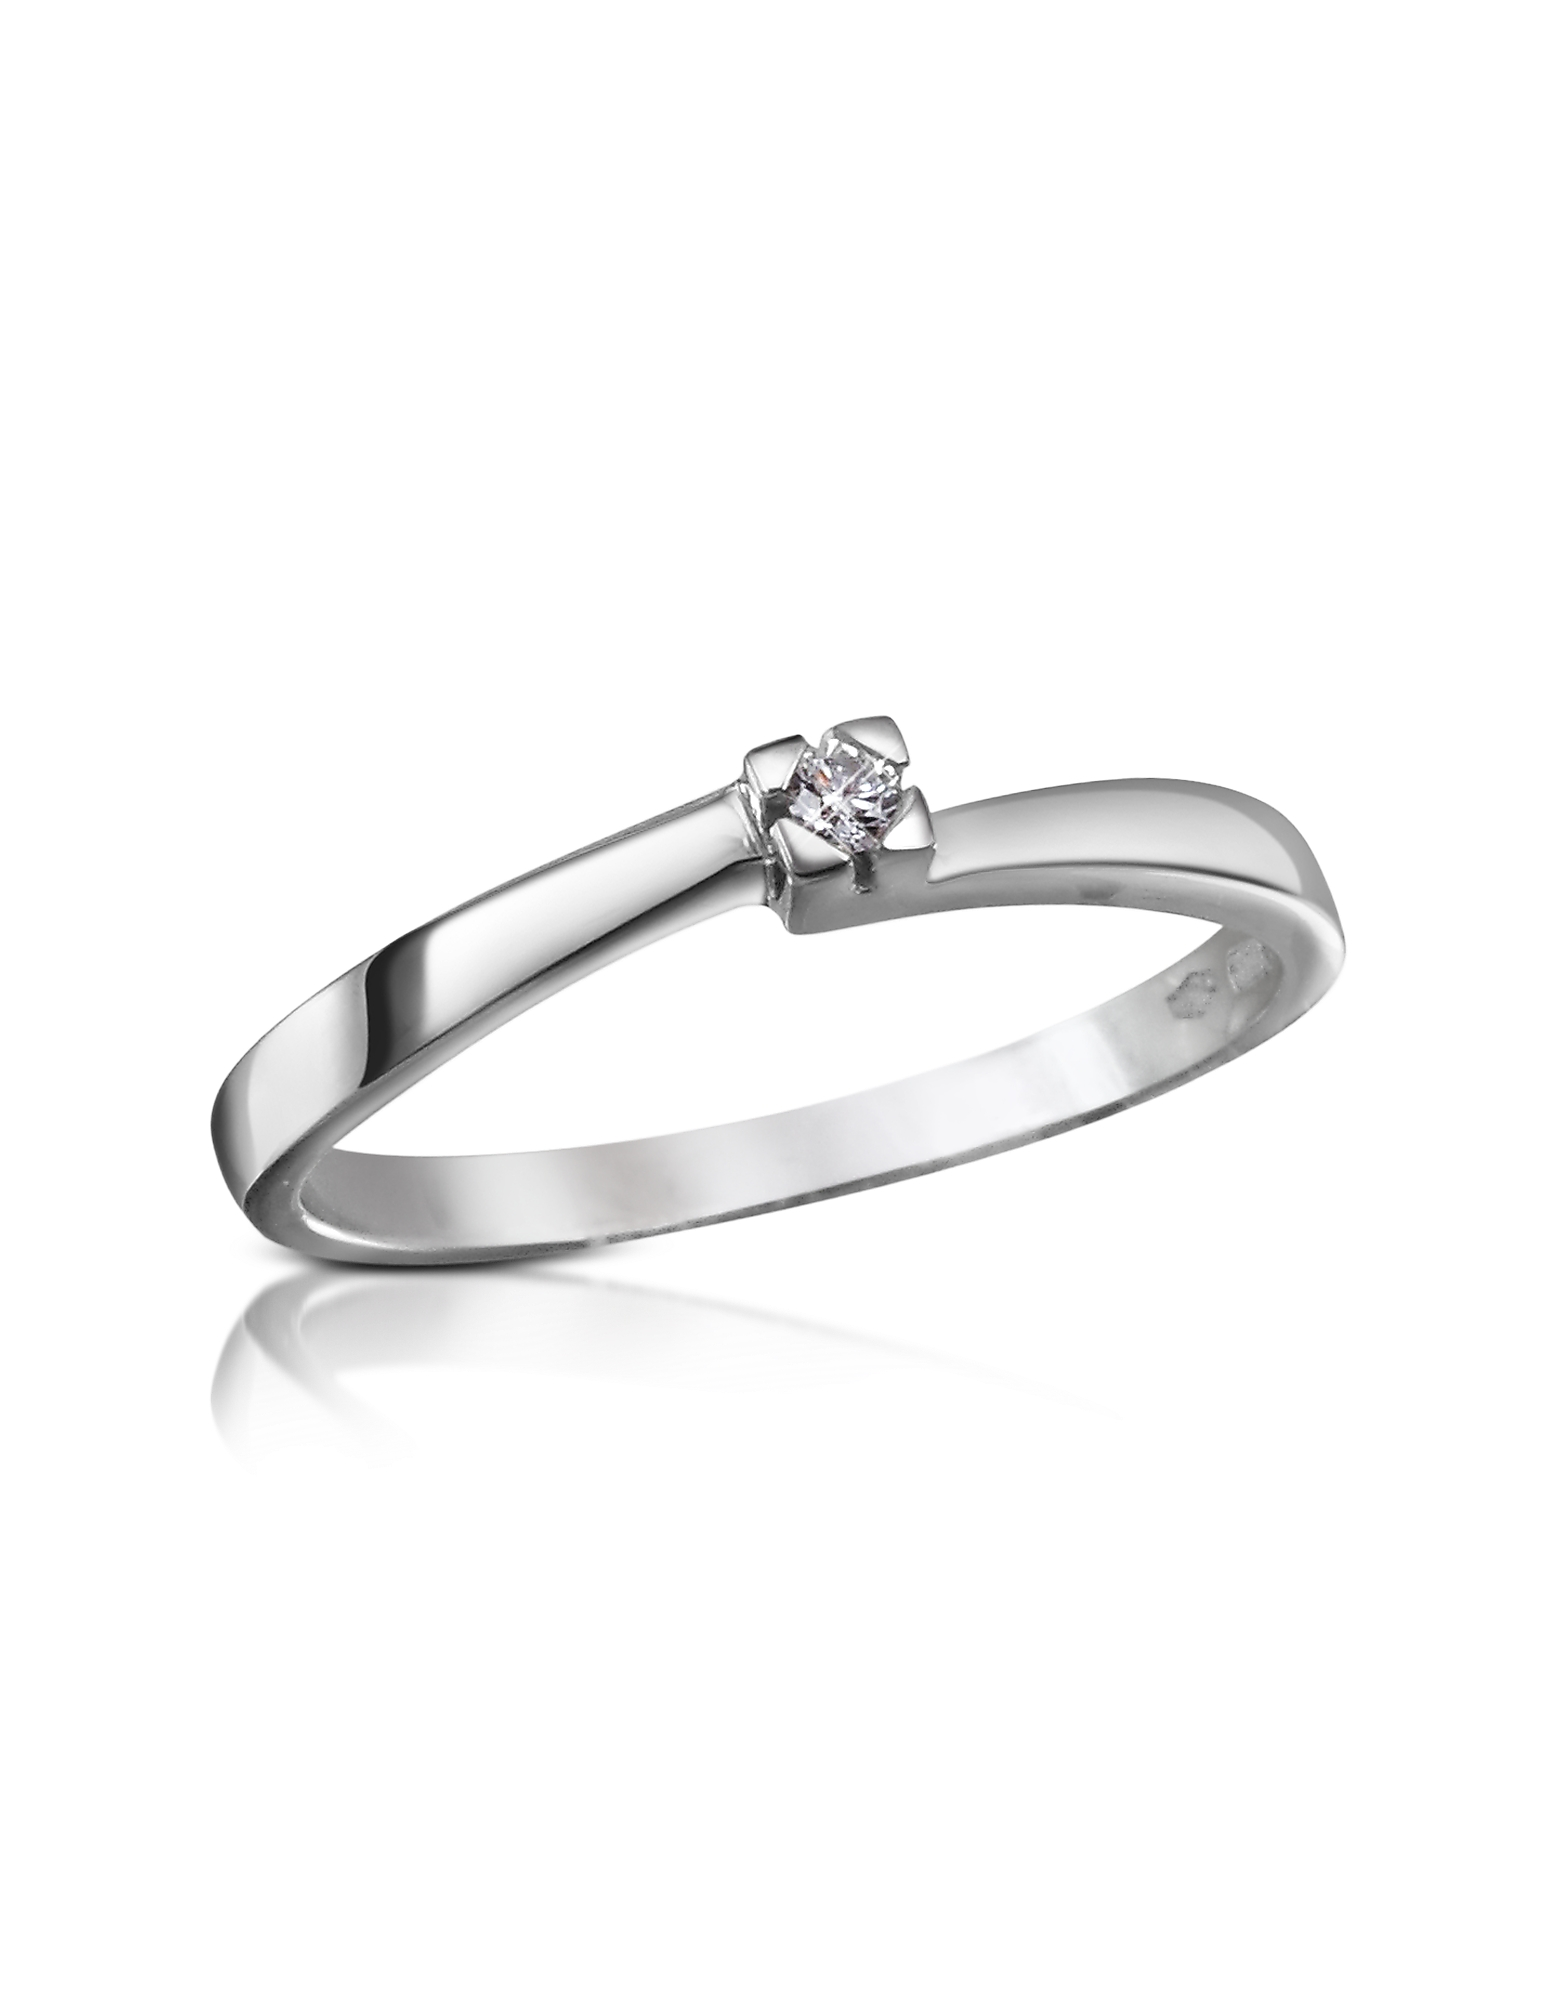 Forzieri Rings, 0.03 ctw Diamond Solitaire Ring